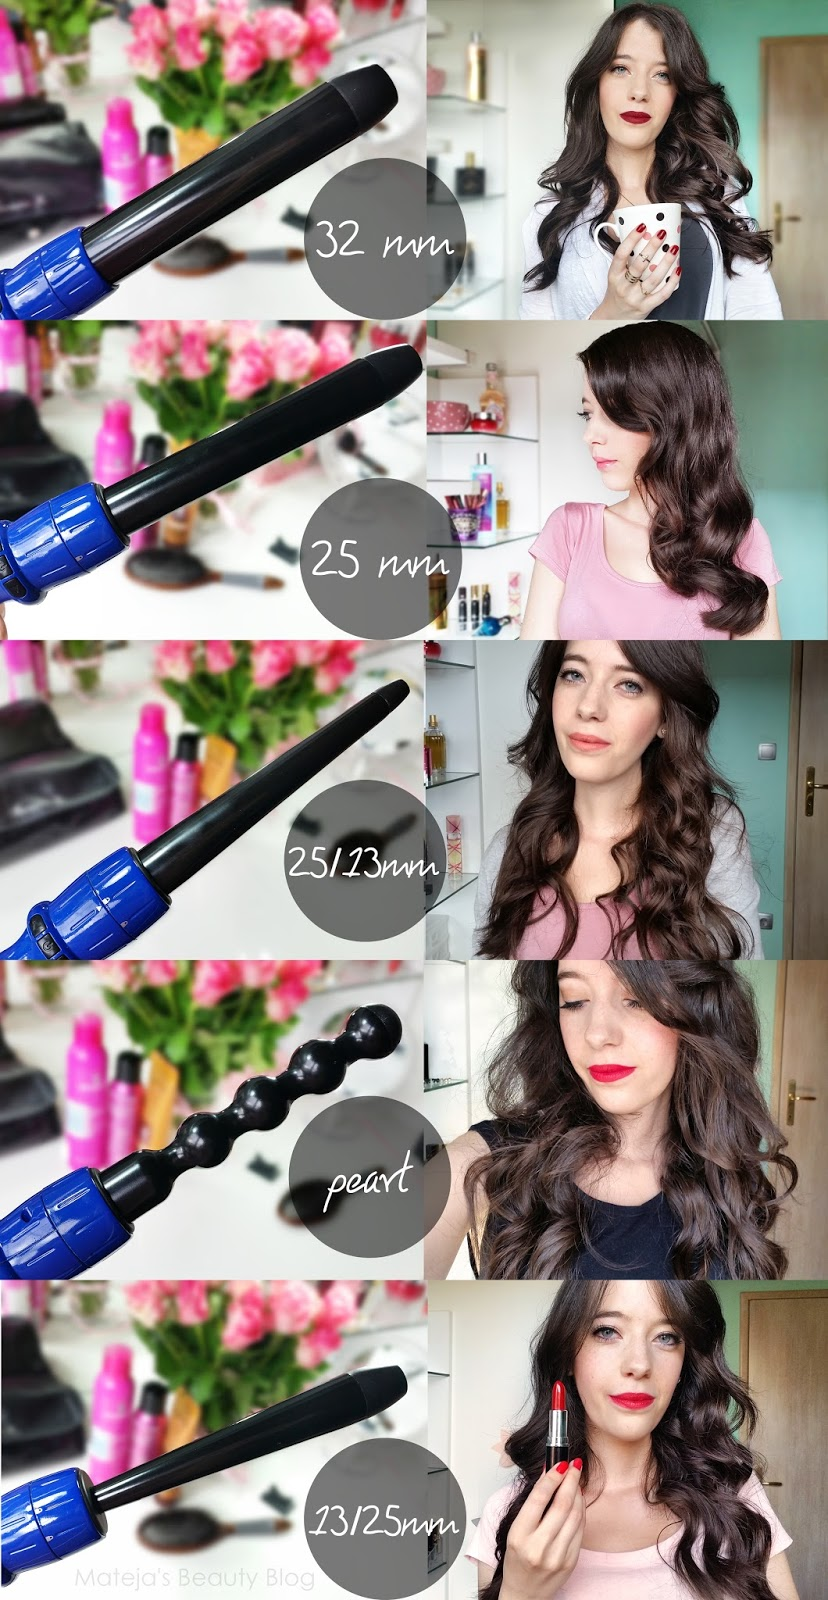 Sapphire 8 in 1 complete curling wand matejas beauty blog curls last well at this curler though that is also due to my natural hair texture the techniques and products i use retro curls lasted particularly well urmus Images